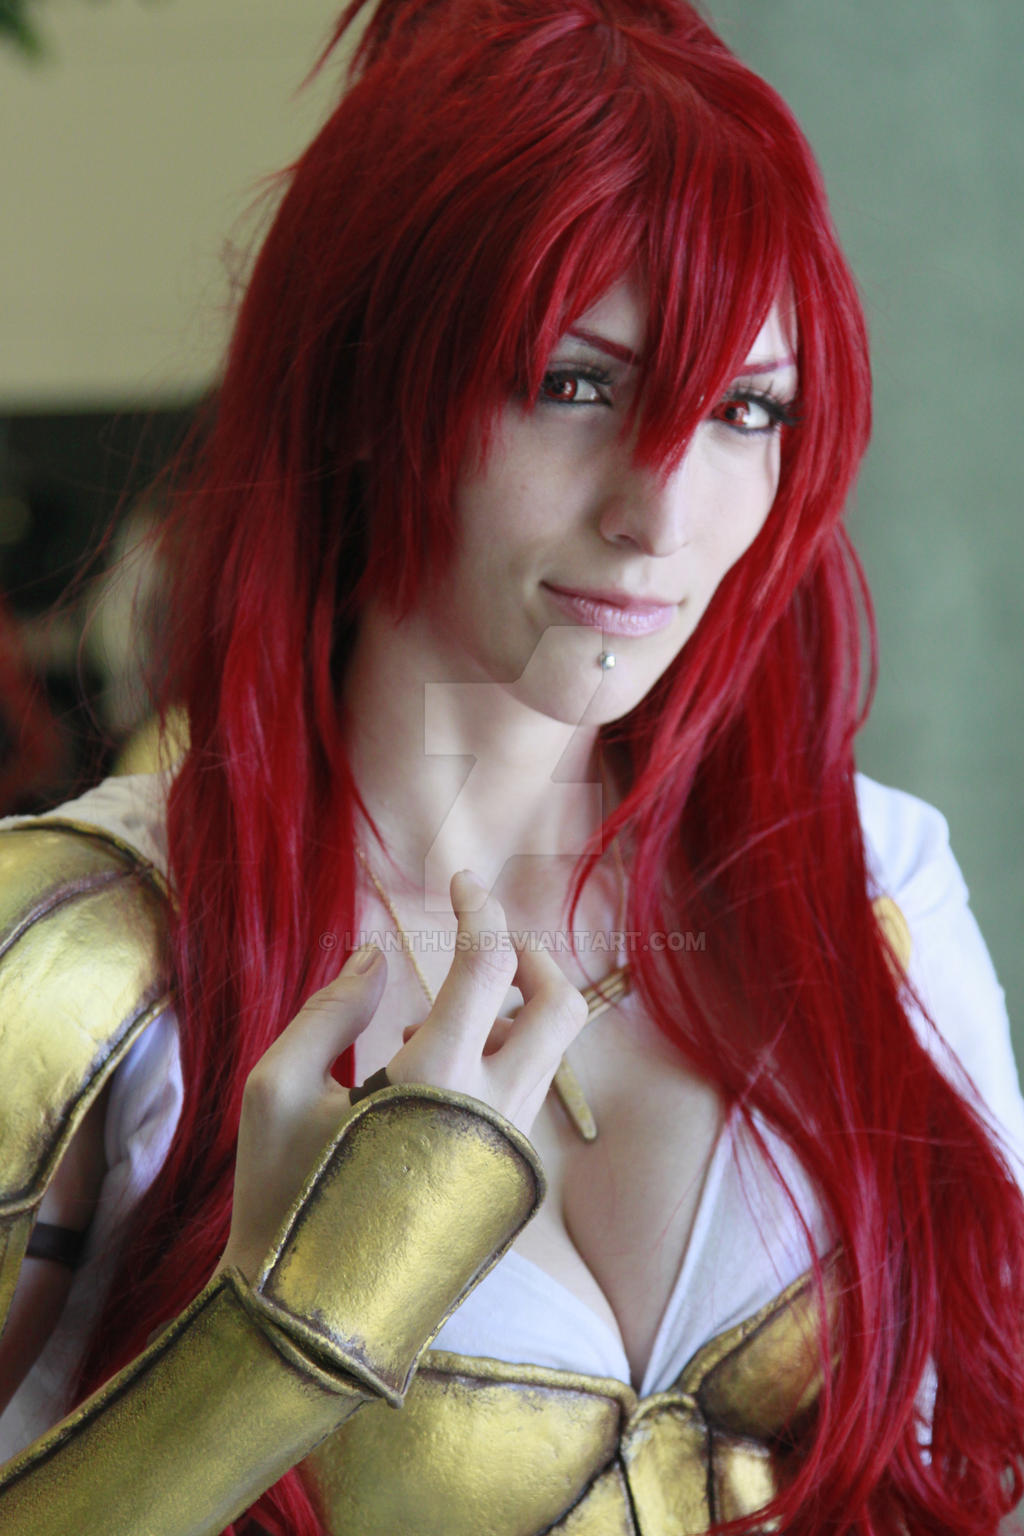 Magi: The Labyrinth of Magic - Masrur by lianthus